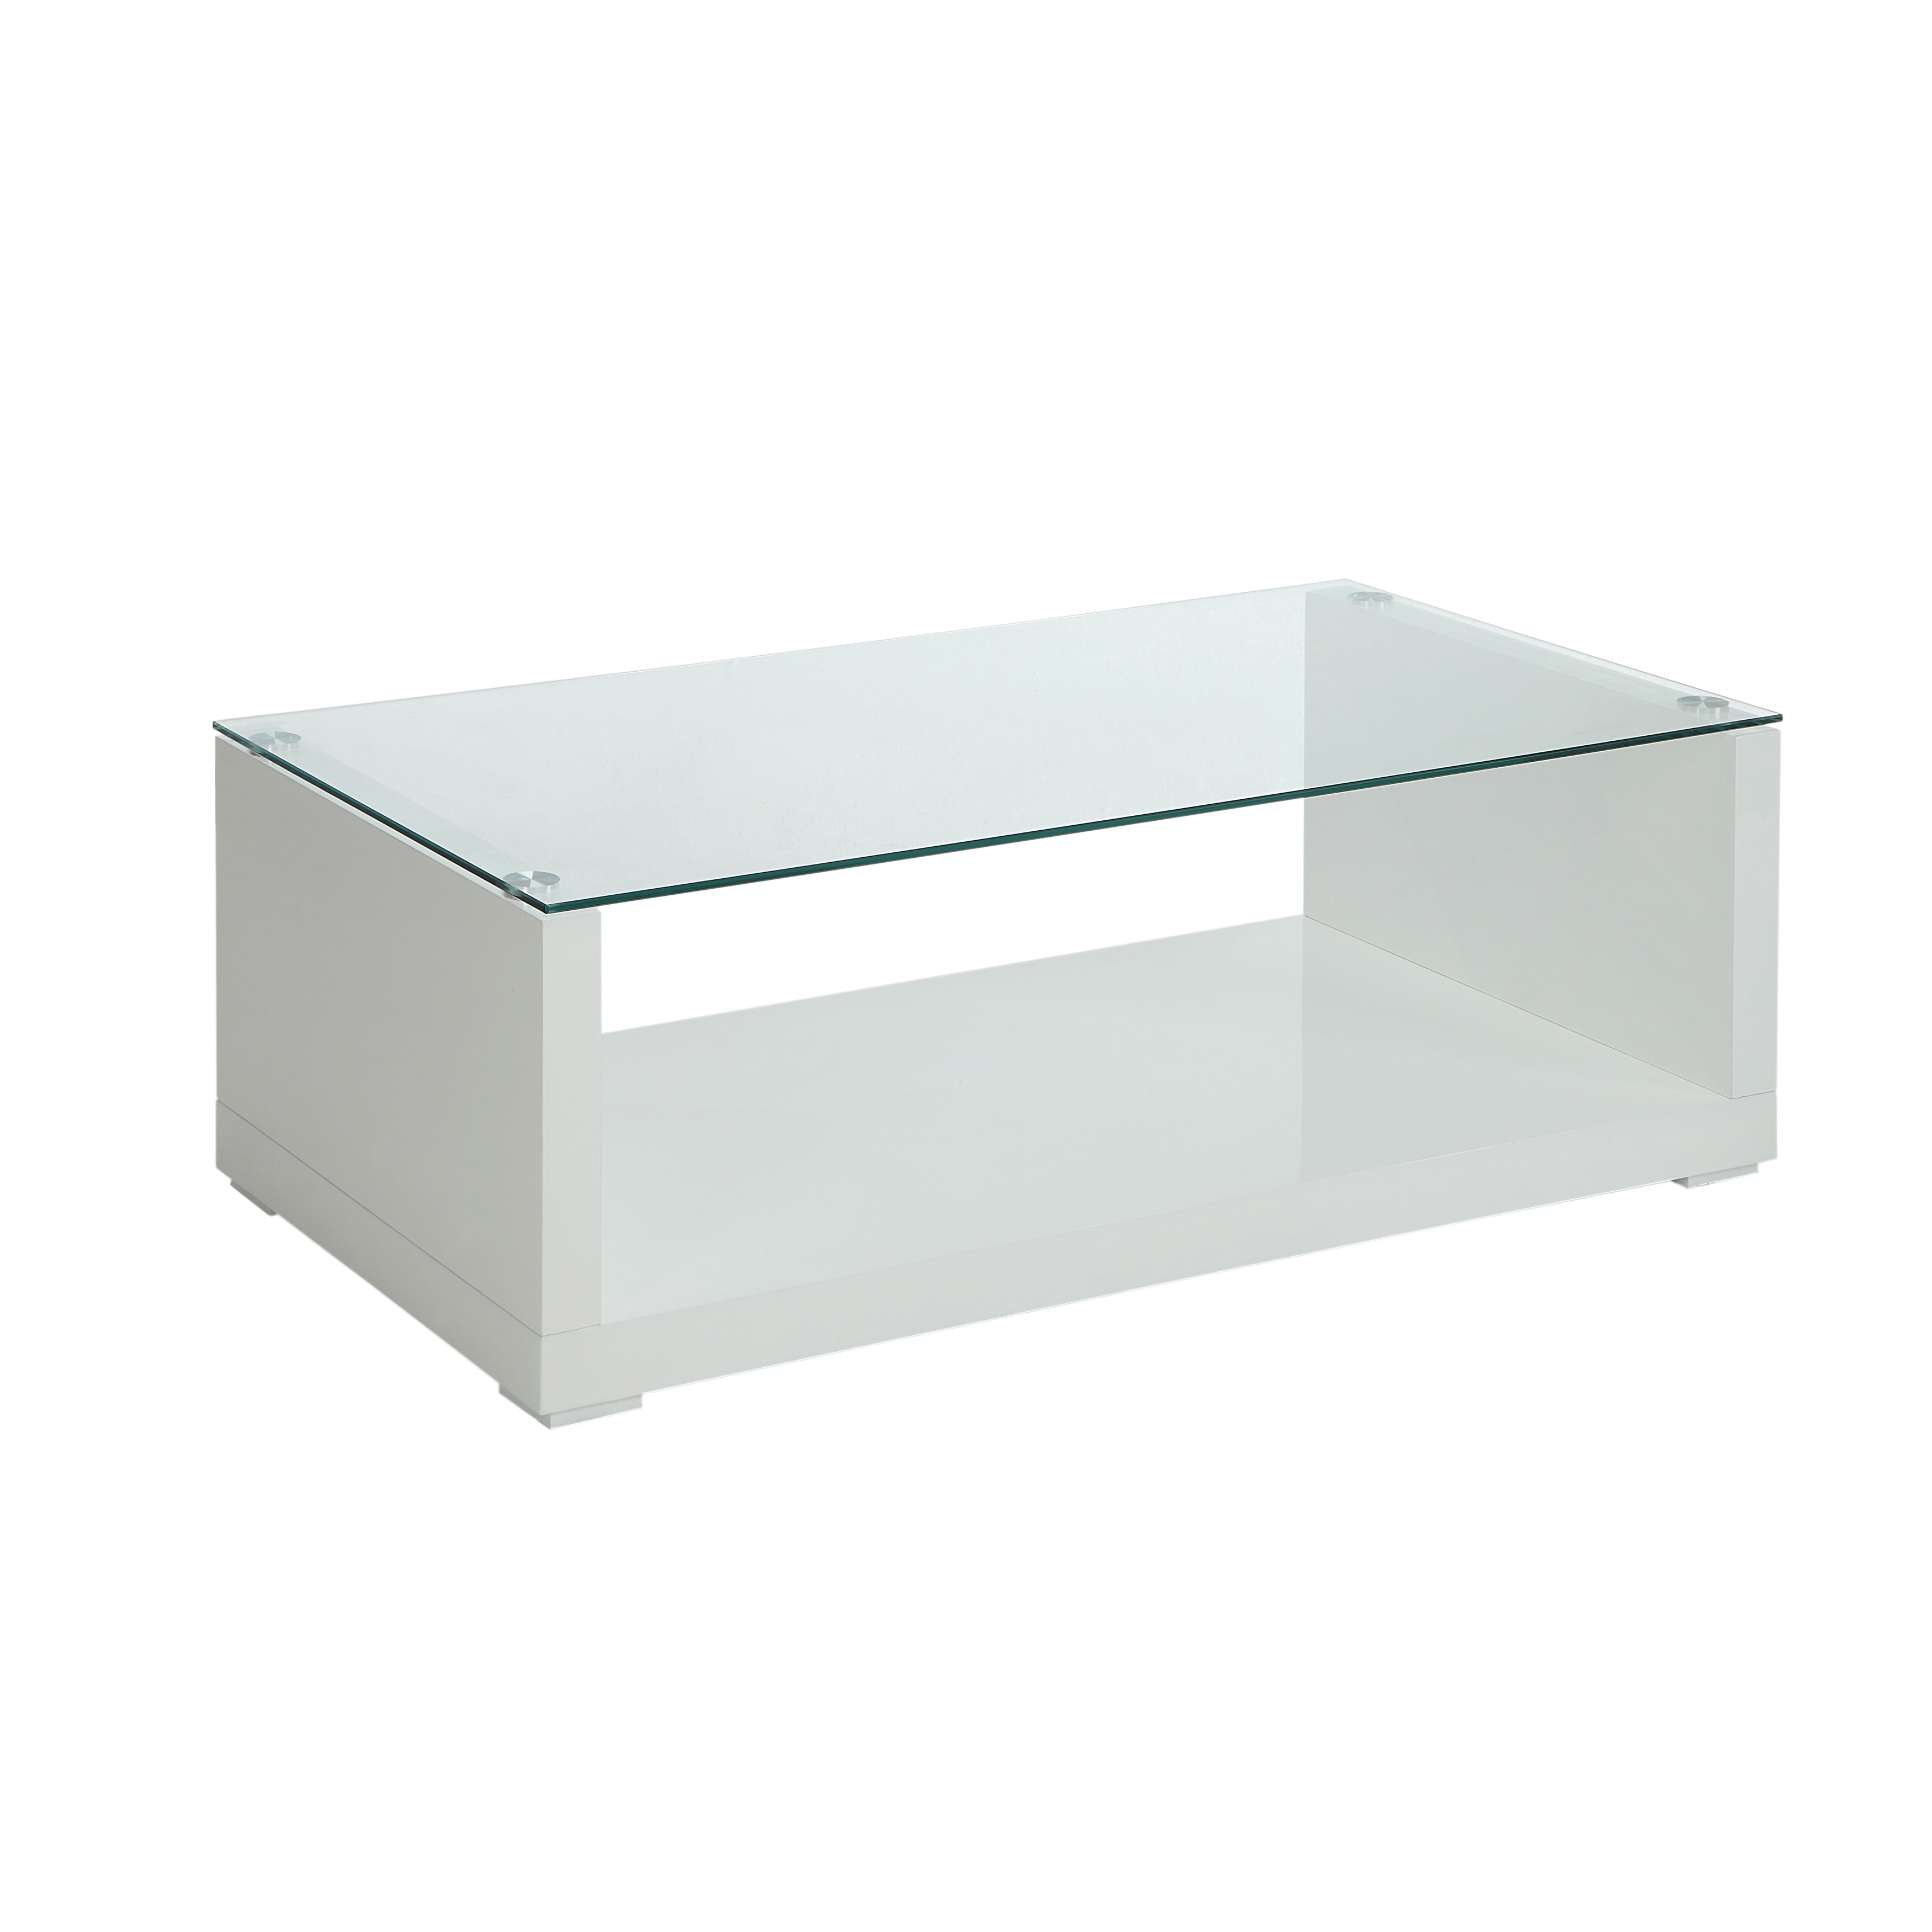 Shop Furniture Of America Shura Contemporary High Gloss White Coffee Table    Free Shipping Today   Overstock.com   11138010